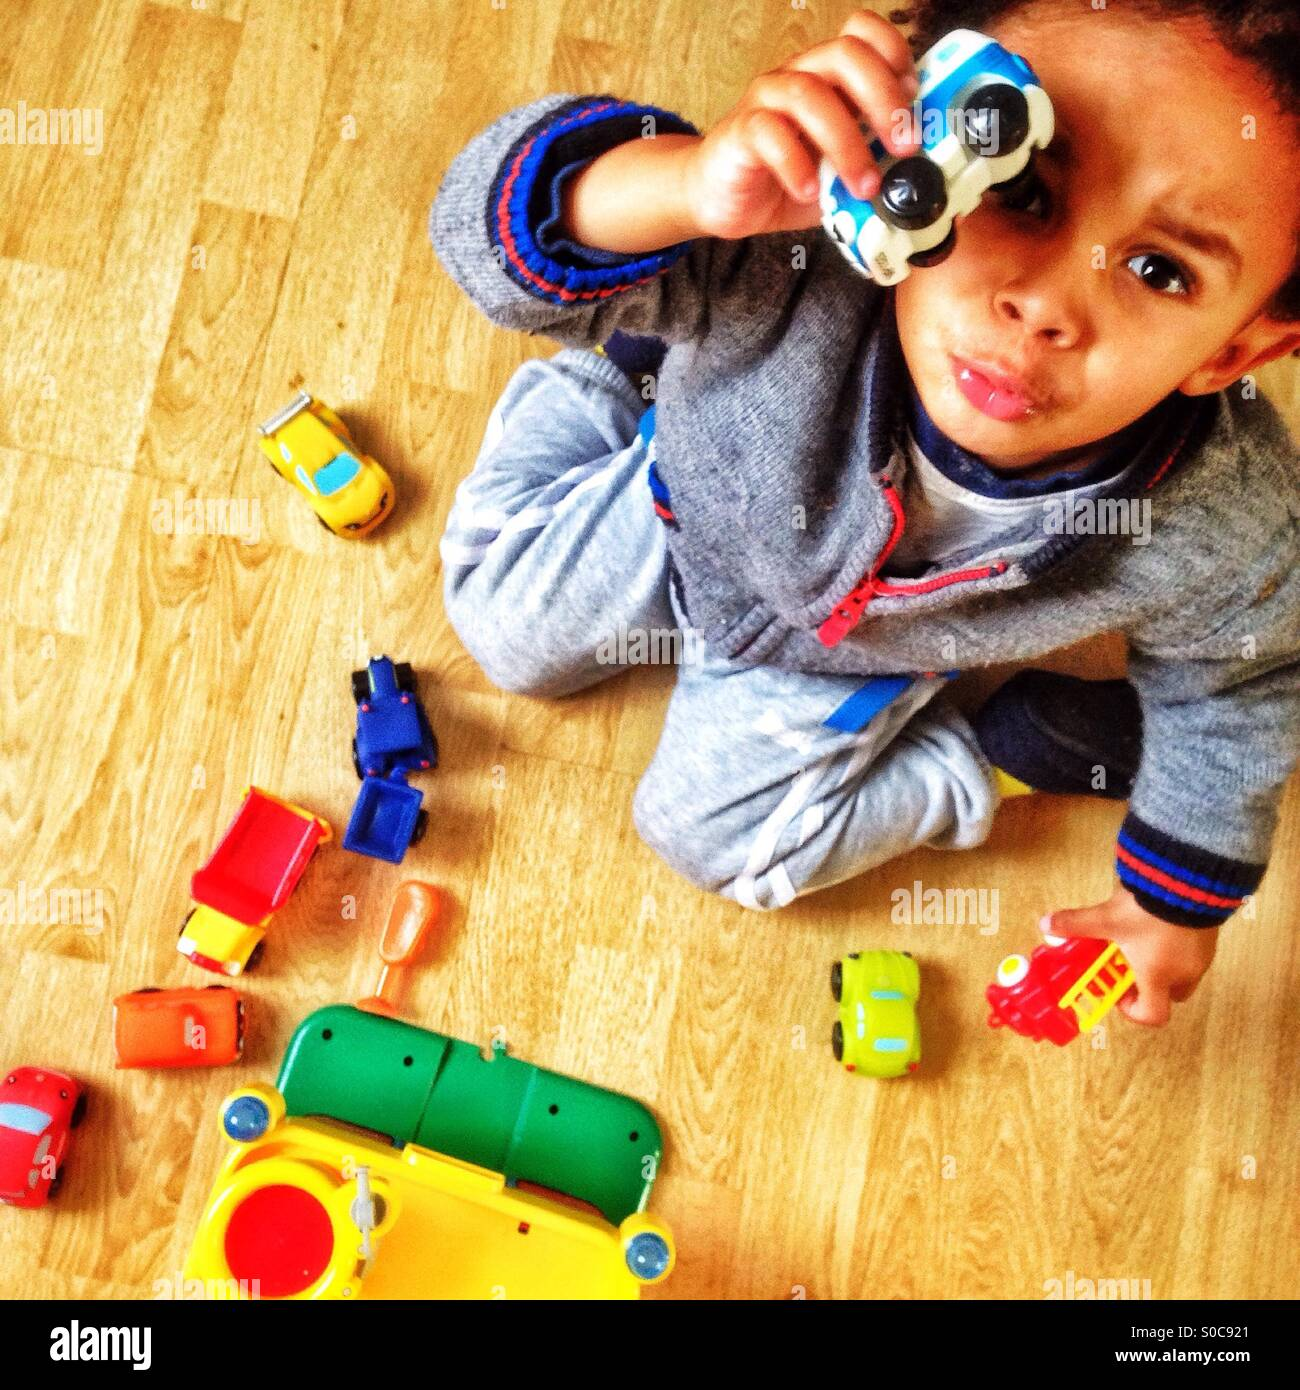 Little boy playing with his toys. Stock Photo